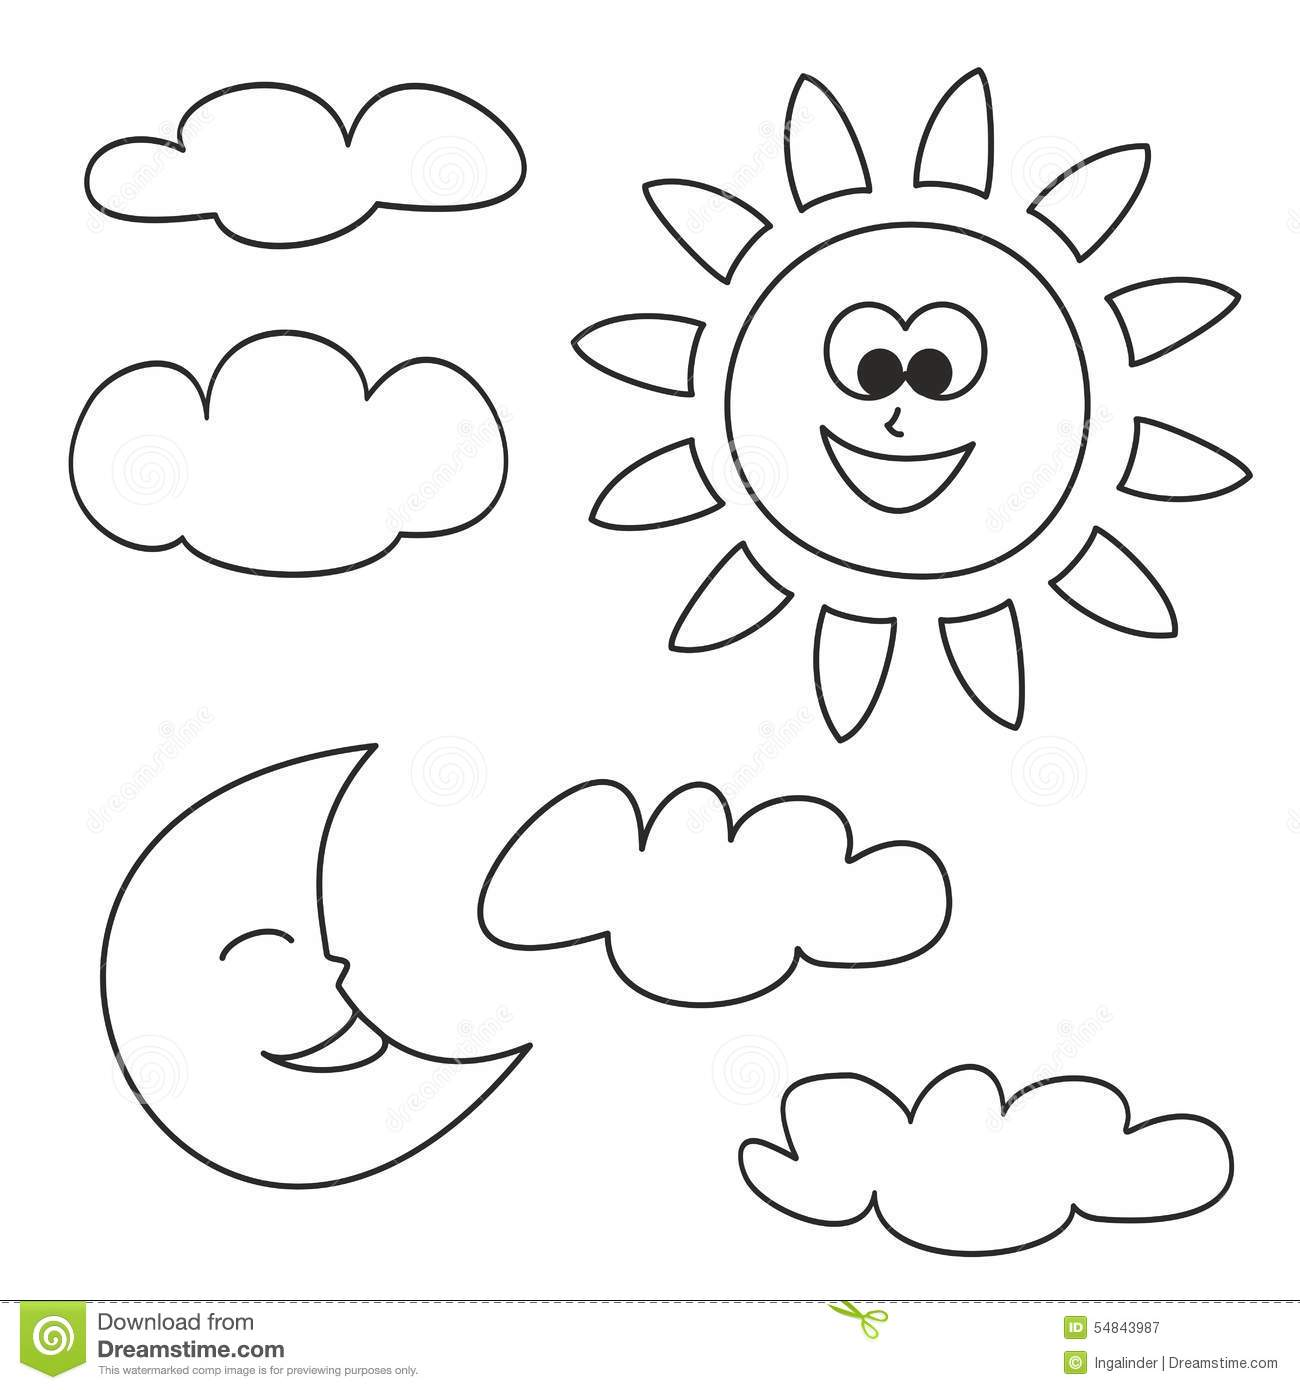 Stock Illustration Sun Moon Clouds Vector Icons Isolated White Background Weather Cartoon Illustrations Kids Coloring Book Image54843987 on forest house plans